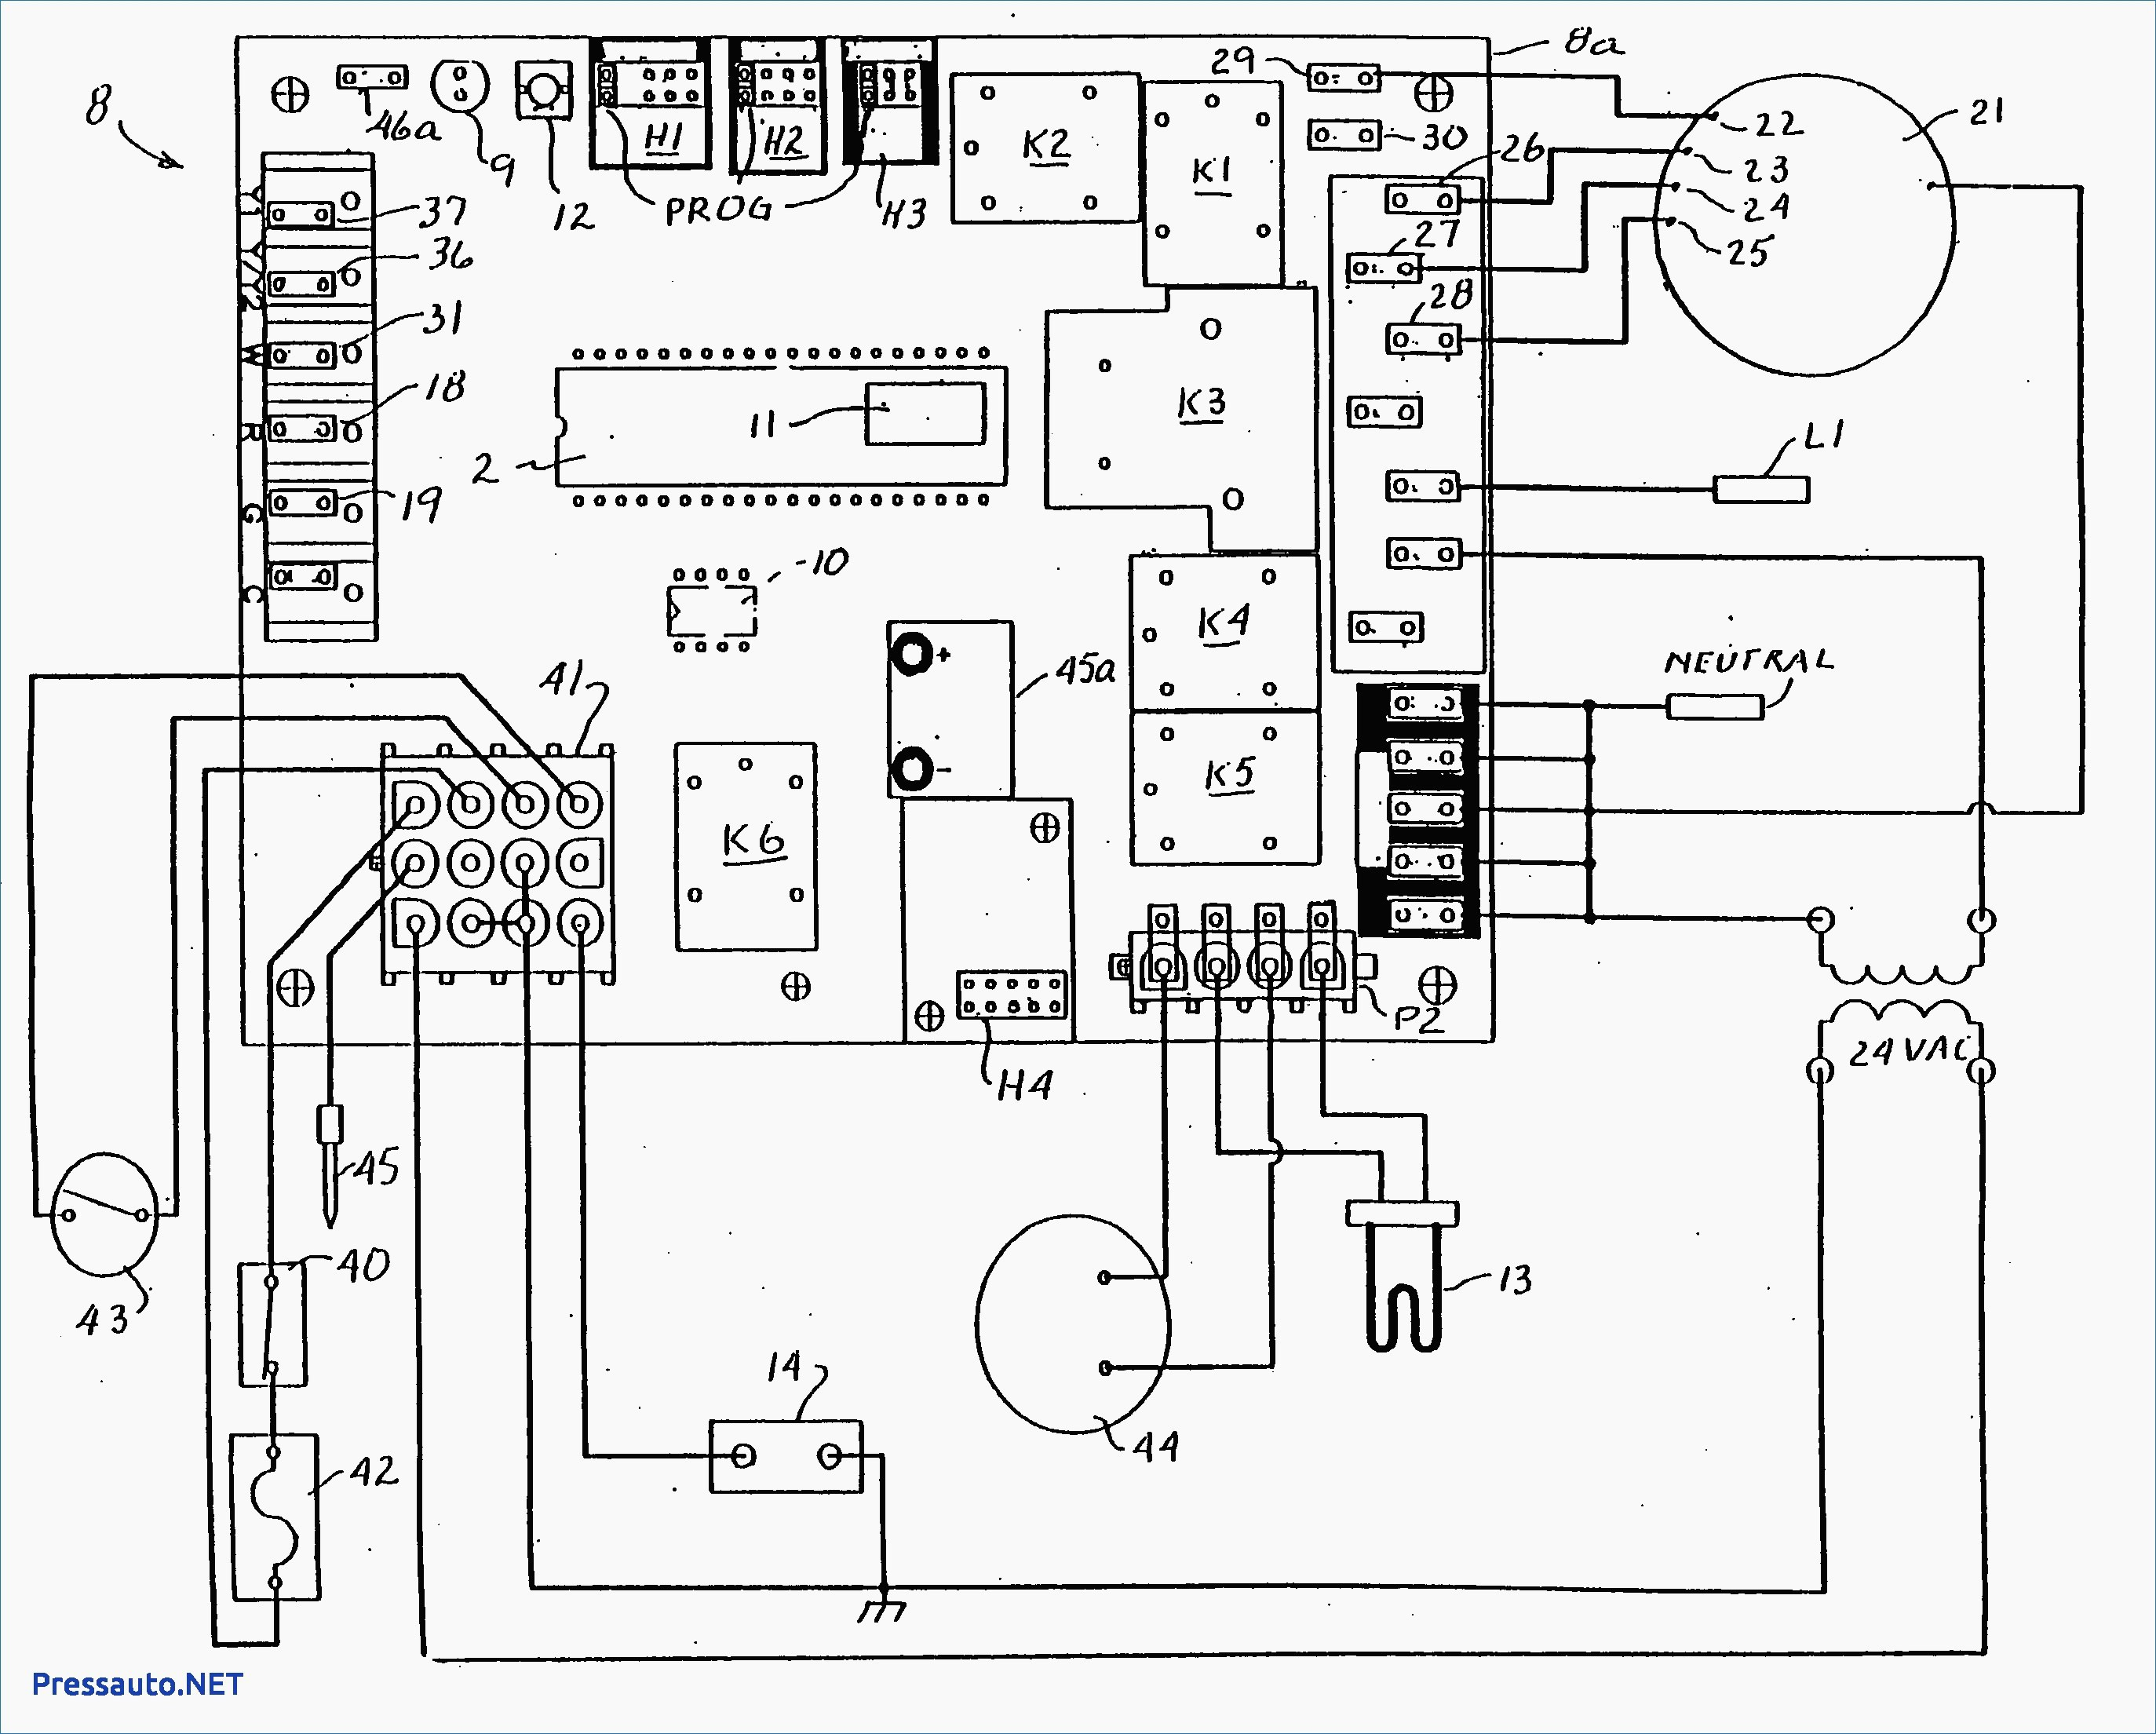 Heat Sequencer Wiring Diagram Electric Heat Furnace Wiring ... on